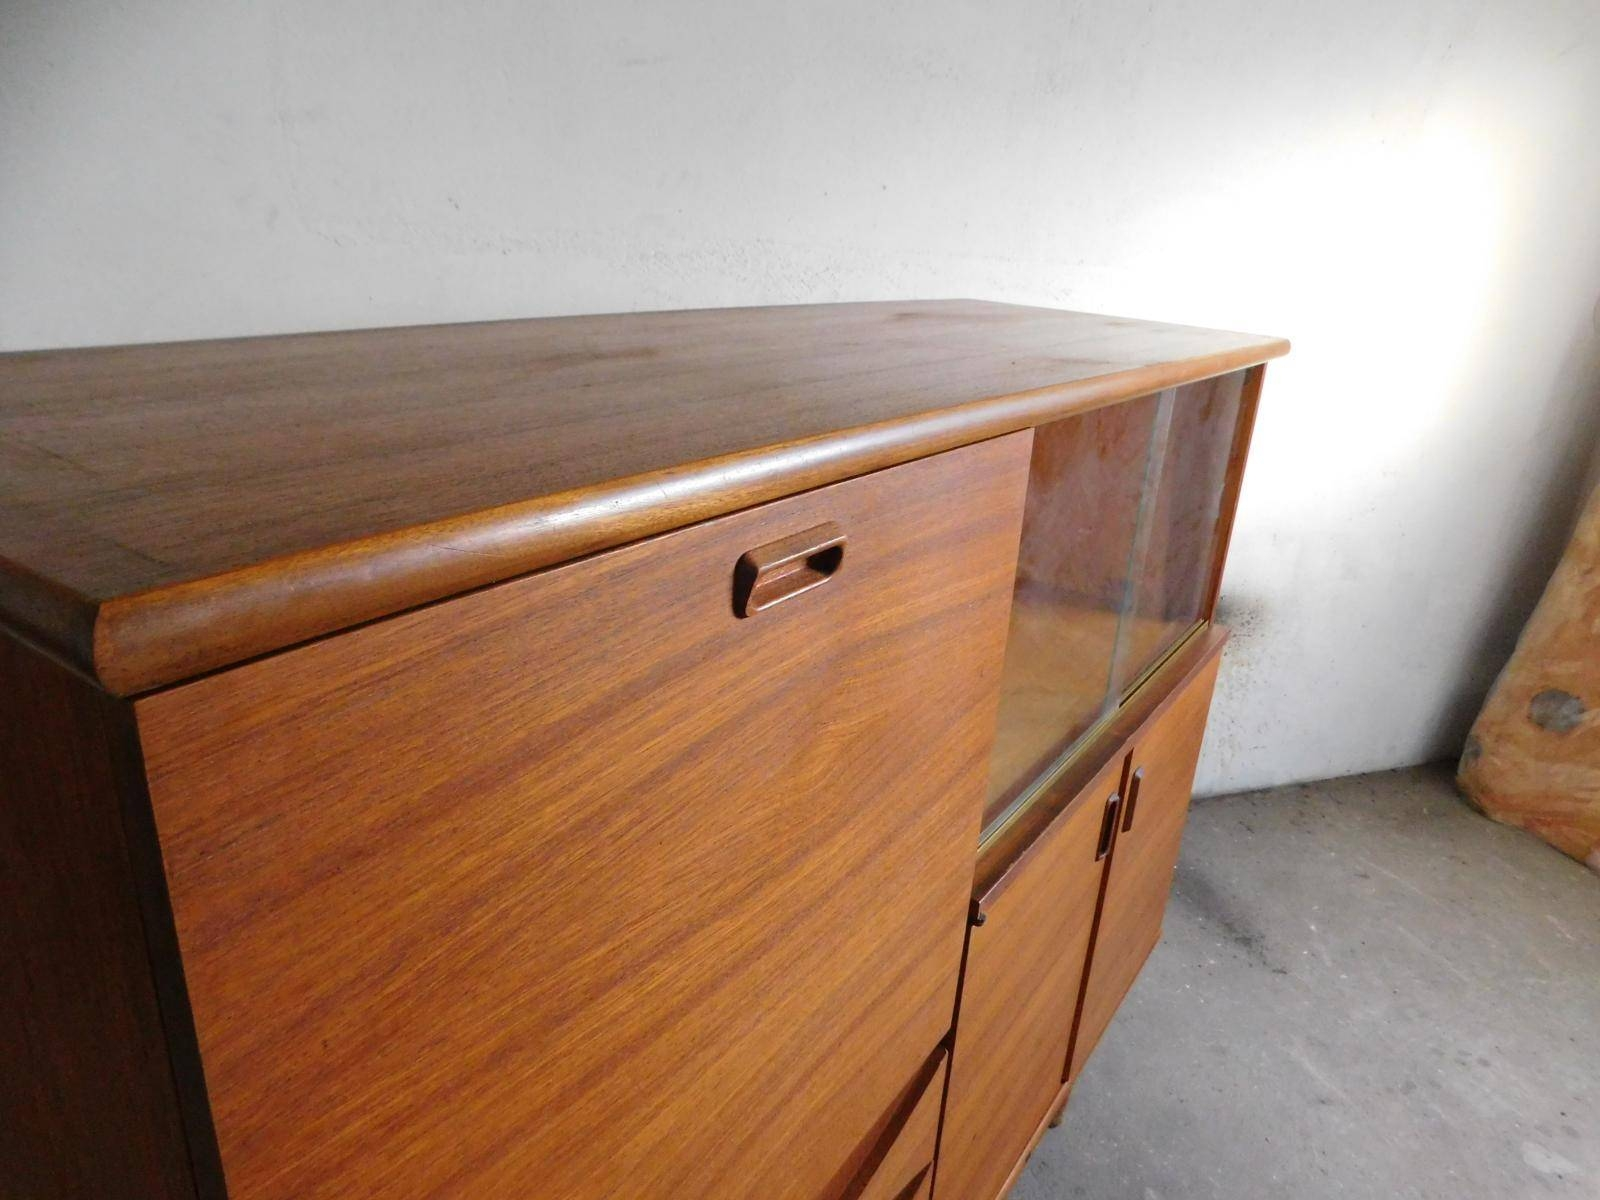 Large Teak Sideboard With Sliding Glass Doors, 1960S For Sale At Within Sideboards With Glass Doors And Drawers (View 8 of 15)